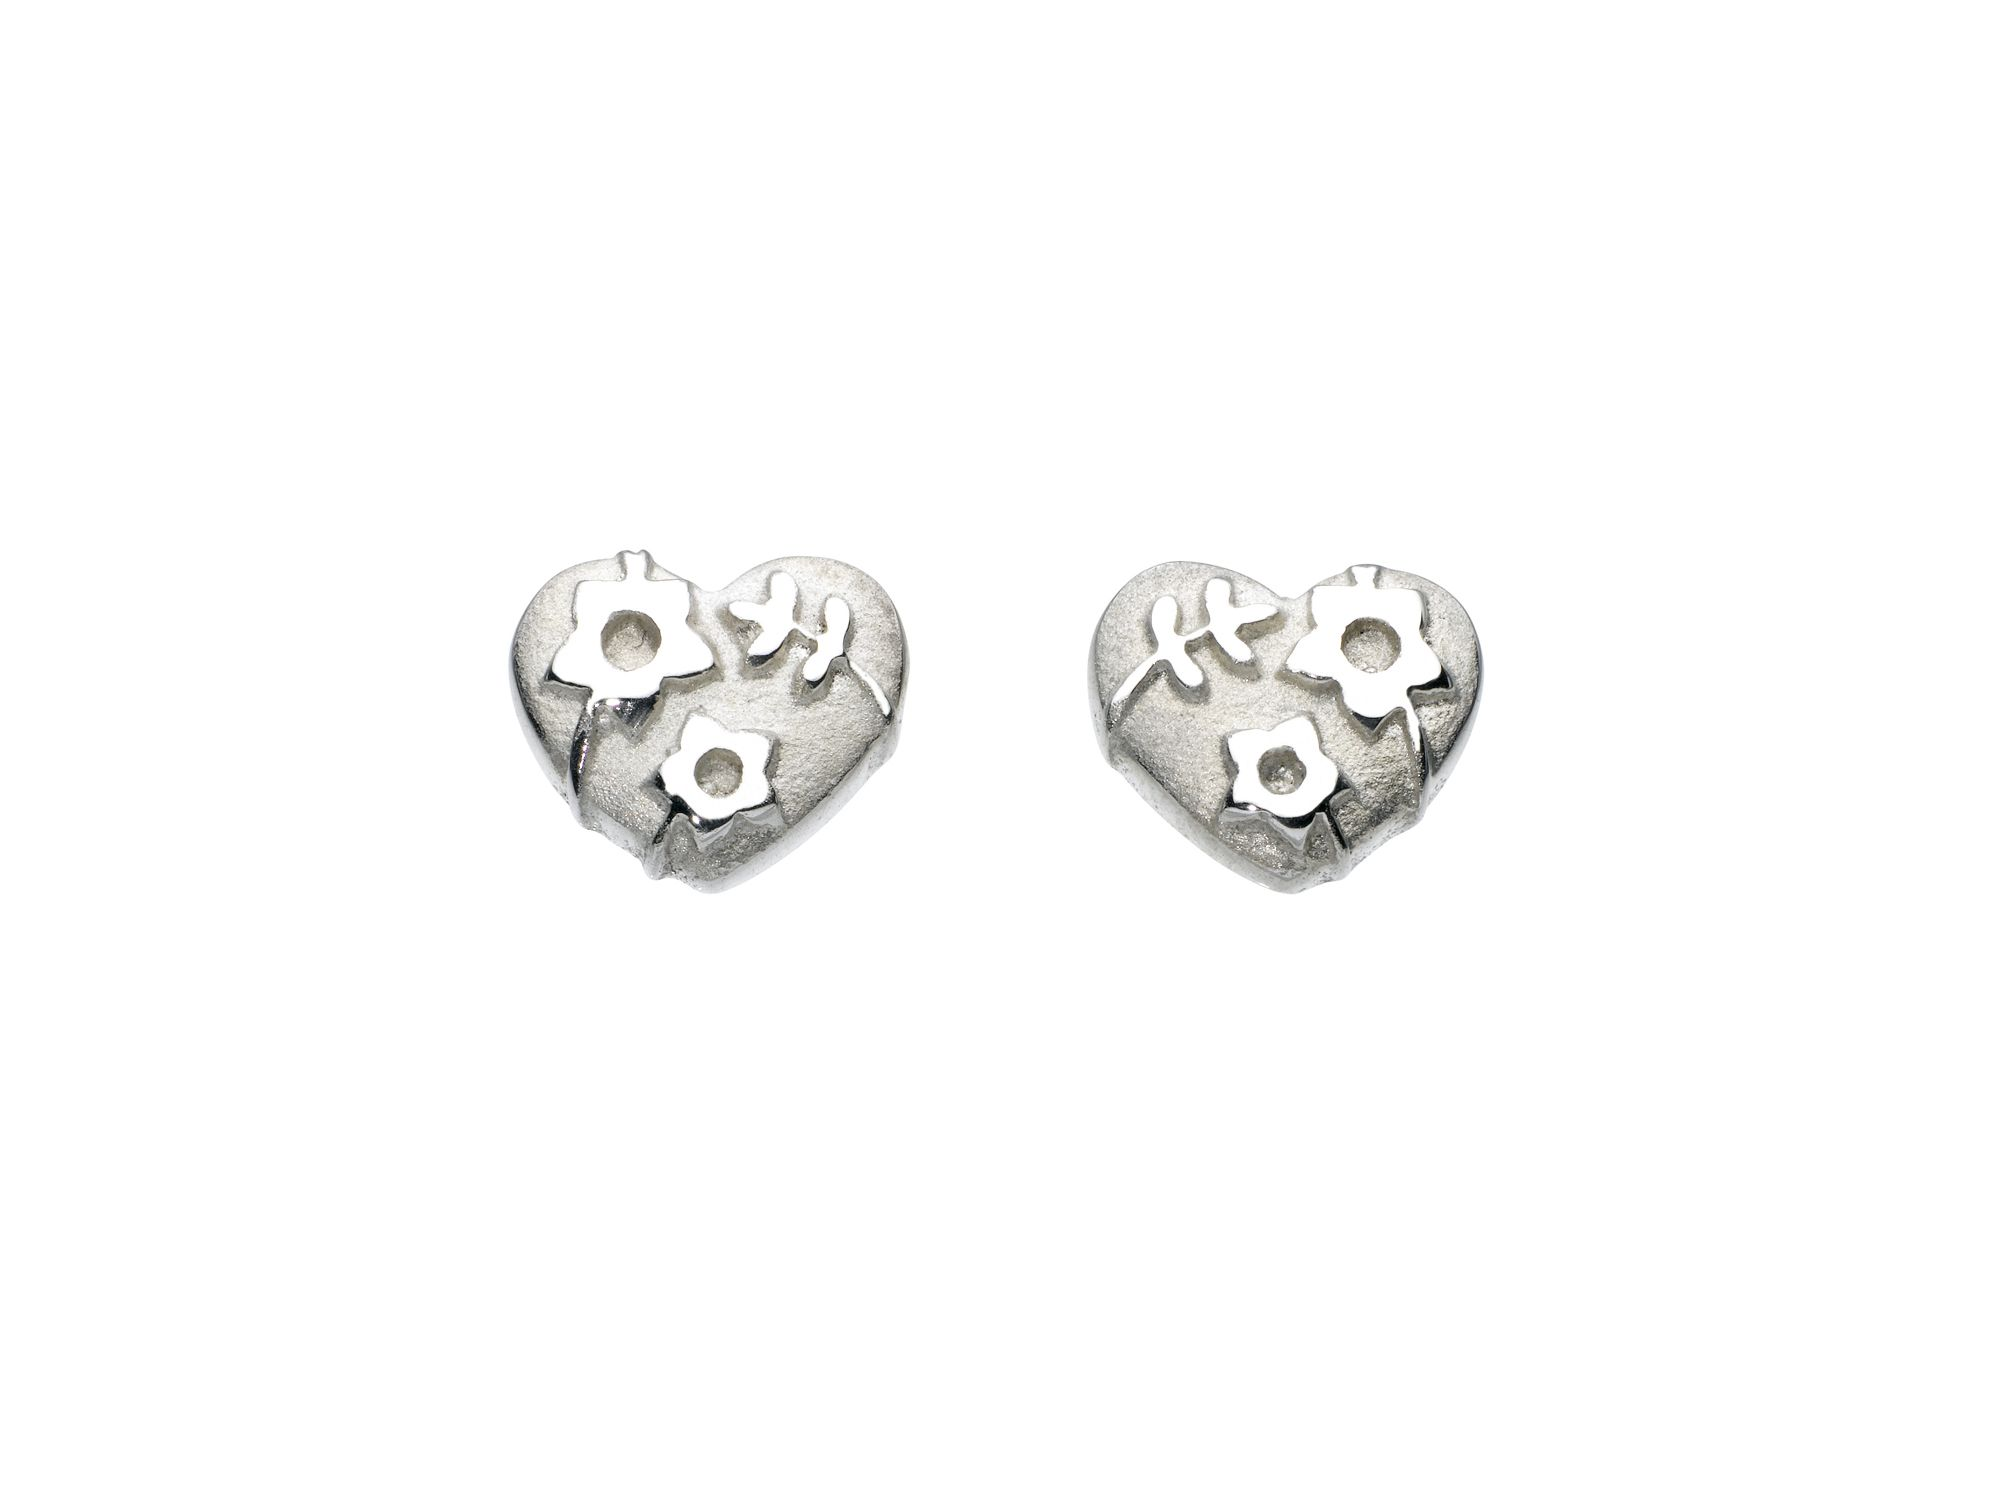 Sterling silver forget-me-not heart earrings